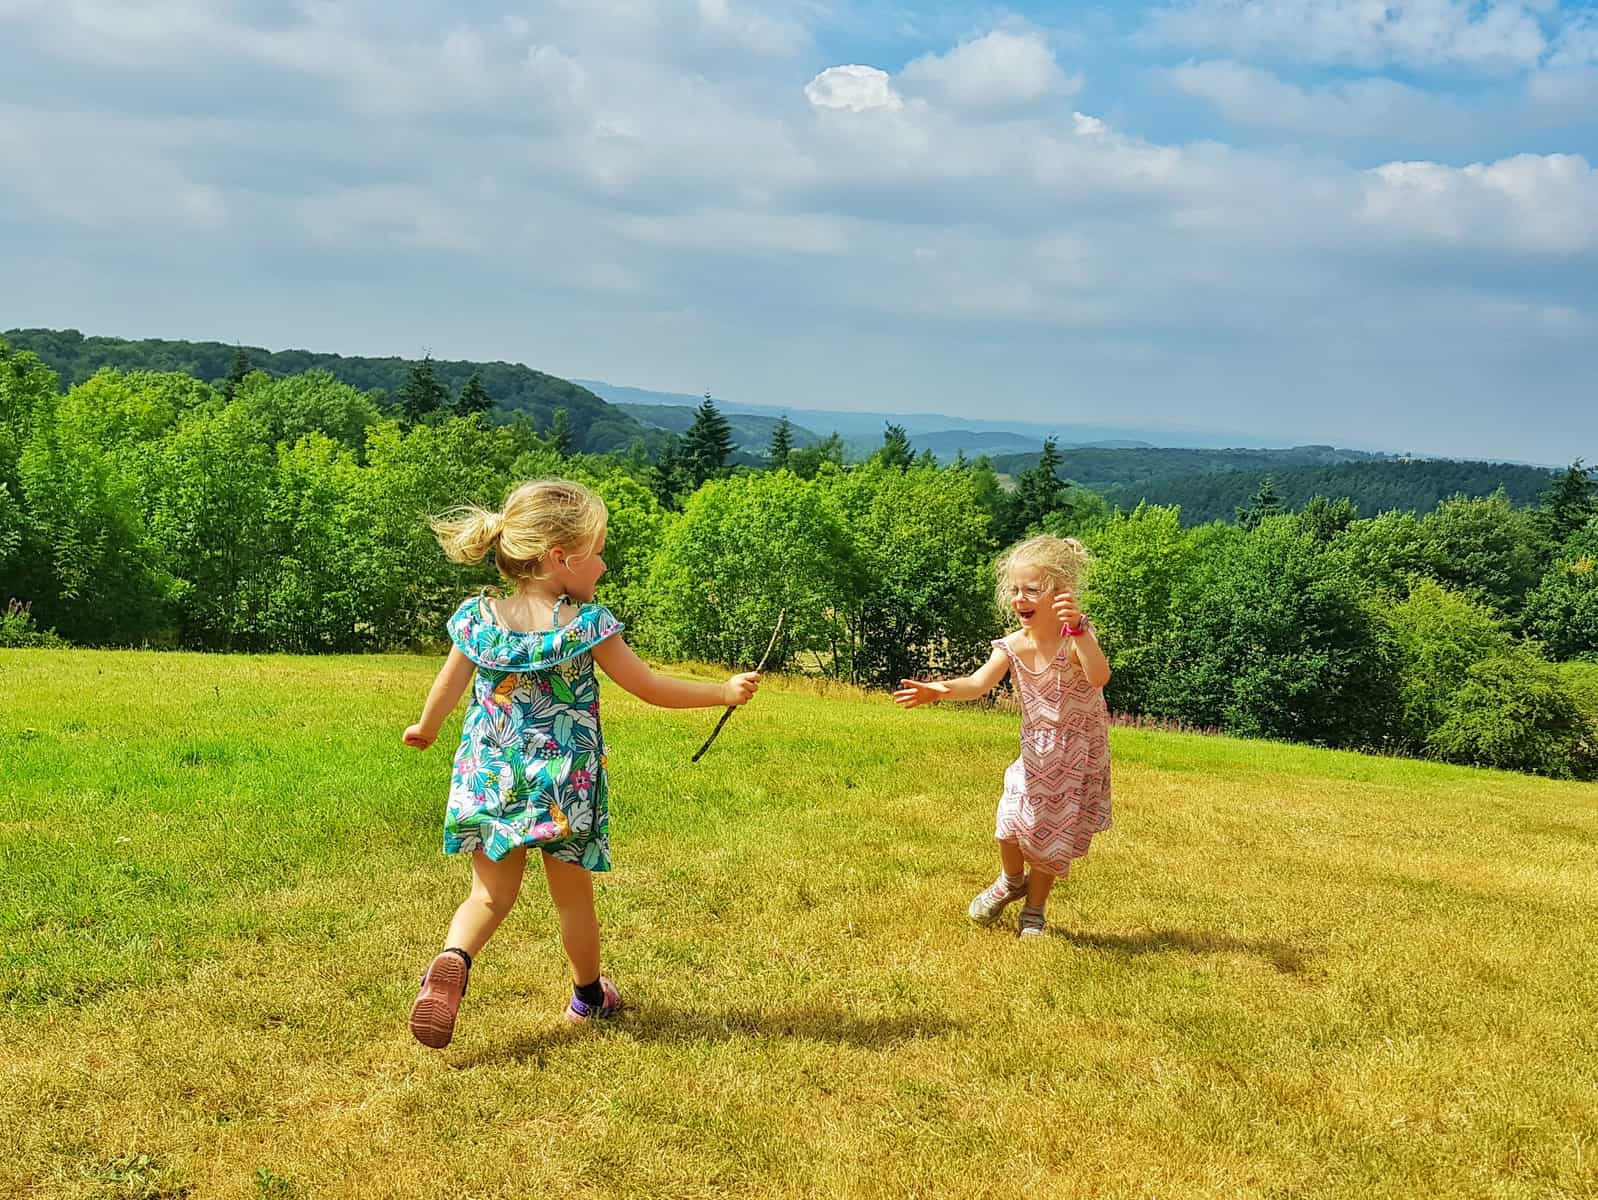 Two little girls passing a stick practicing their relay races after watching the Muller Anniversary Games